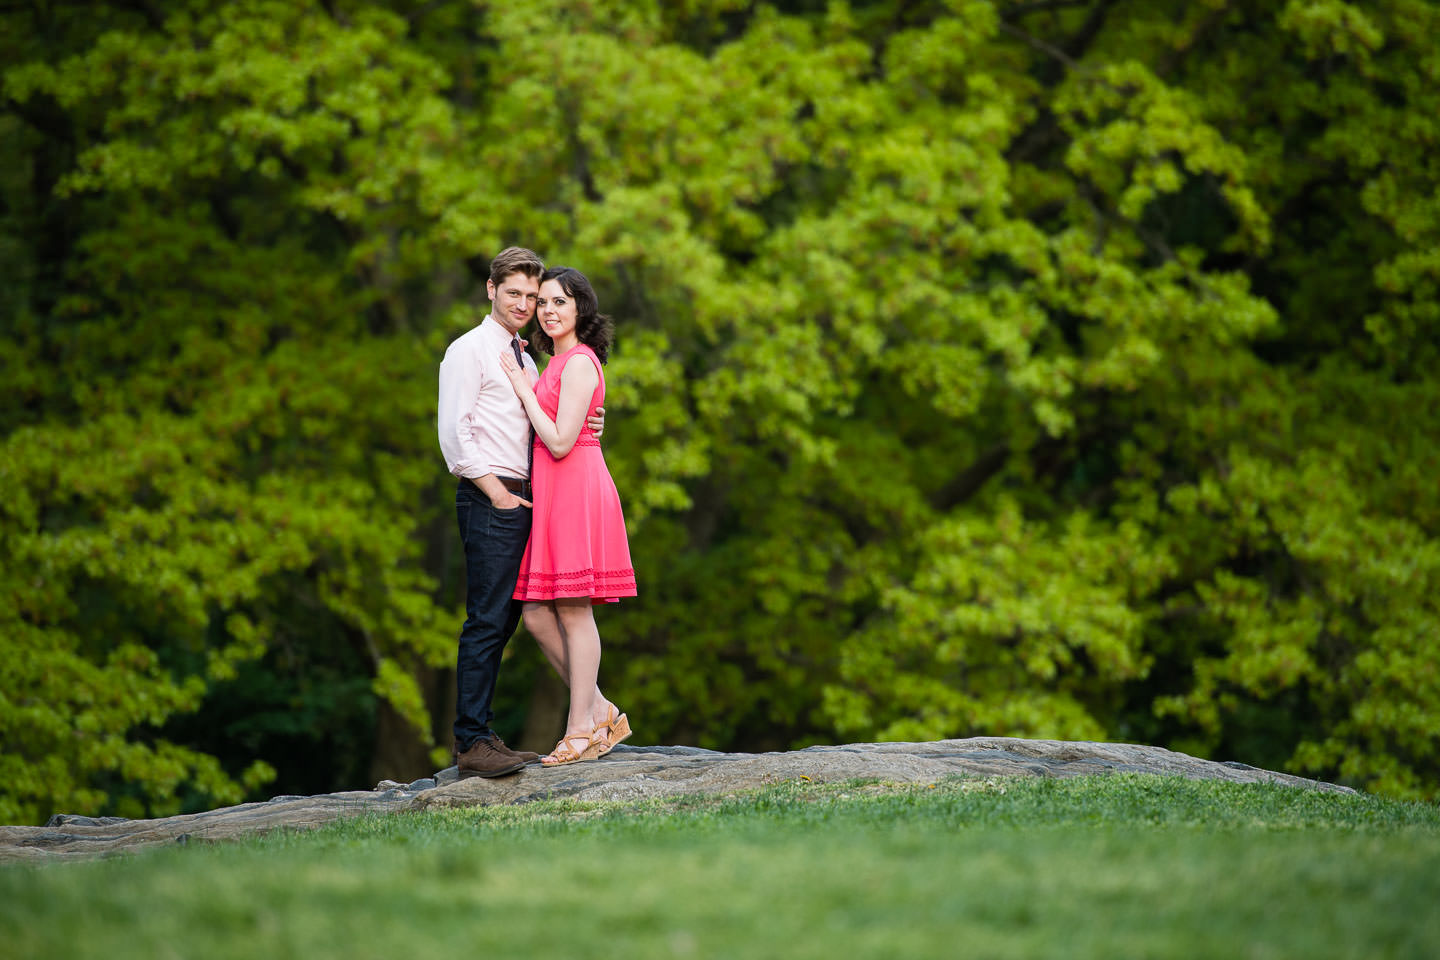 engaged couple guy in slacks and shirt and girl in pink dress stand on rock in central park during engagement session